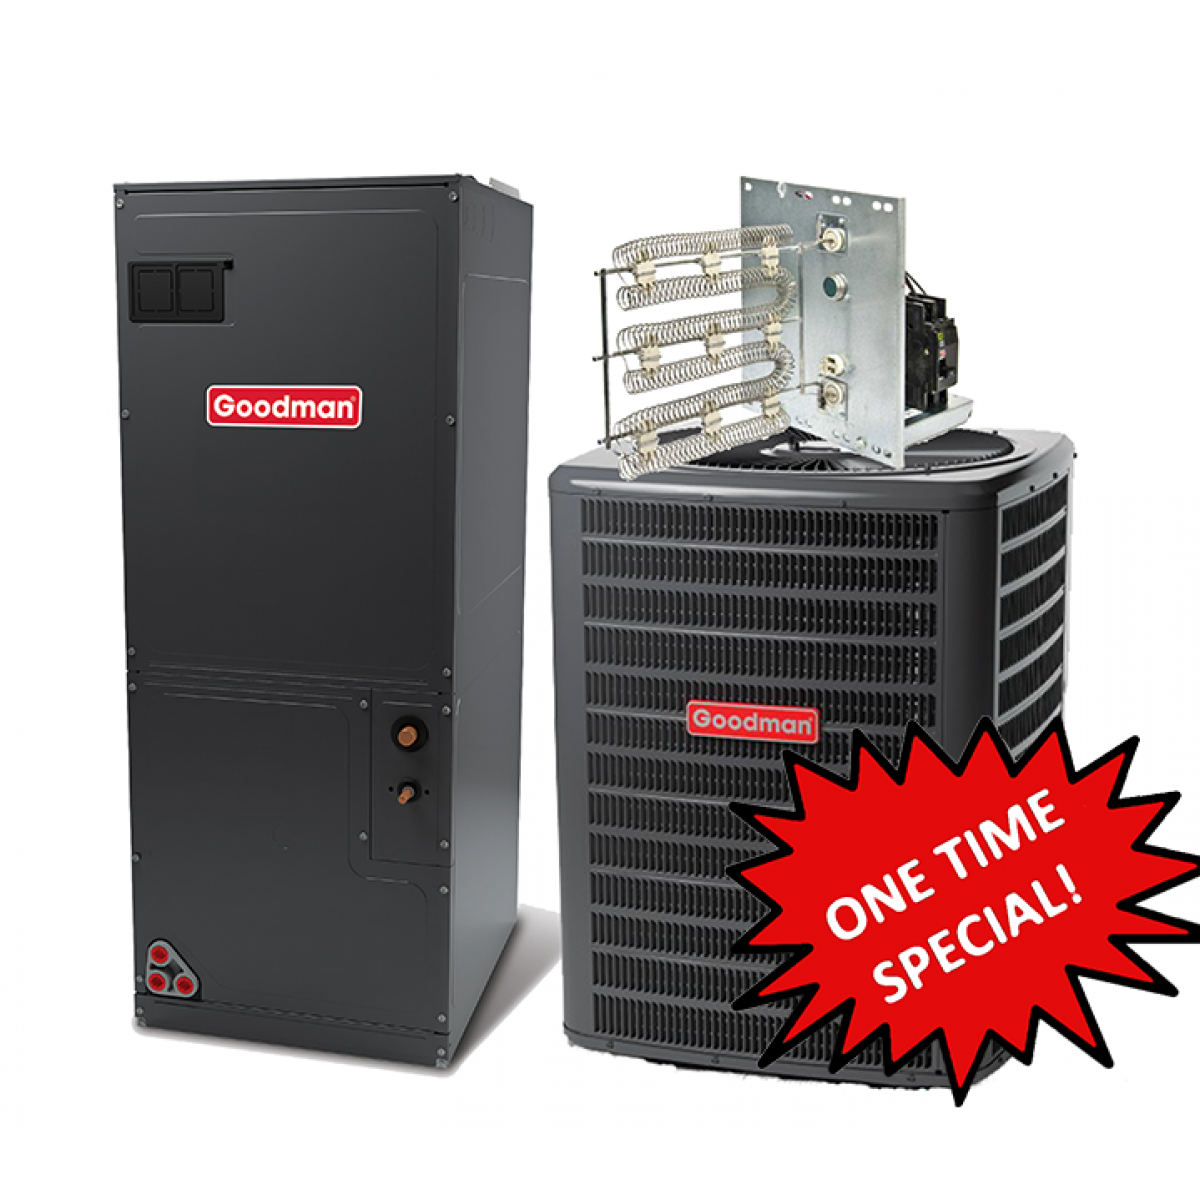 Heat Pump Systems : Goodman ton seer heat pump system one time